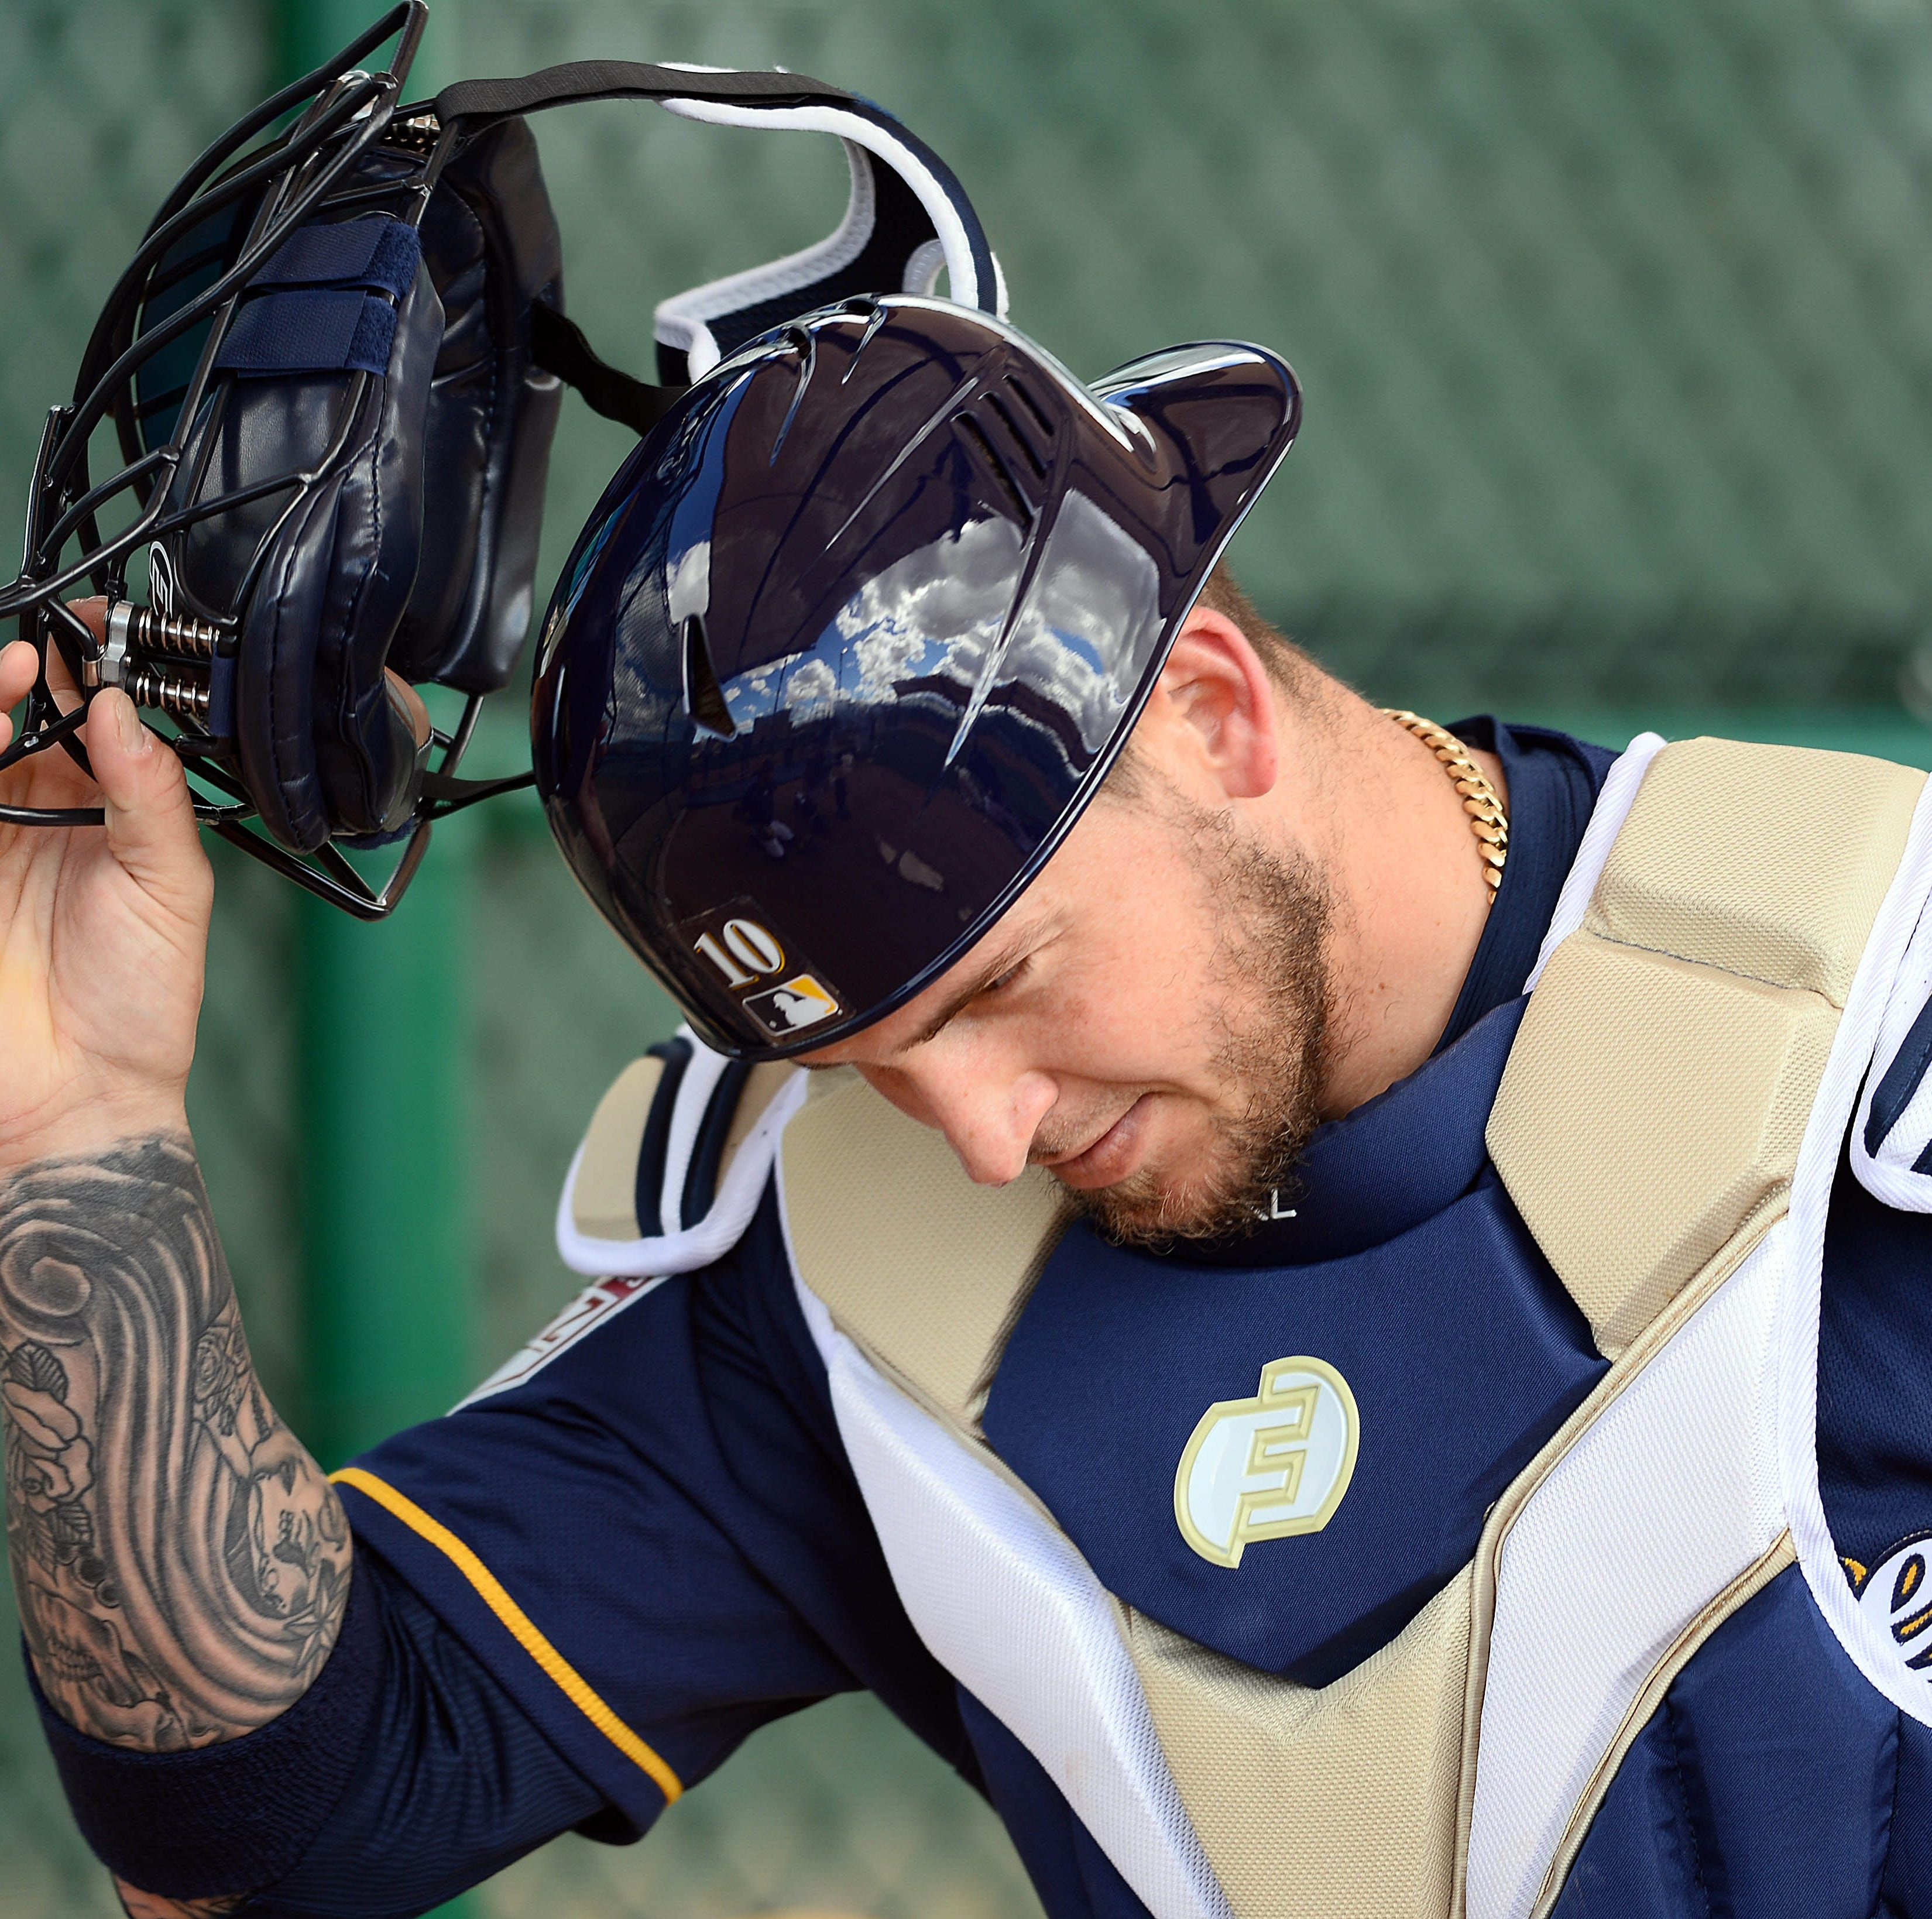 Yasmani Grandal puts his money where his mouth is when it comes to catching equipment